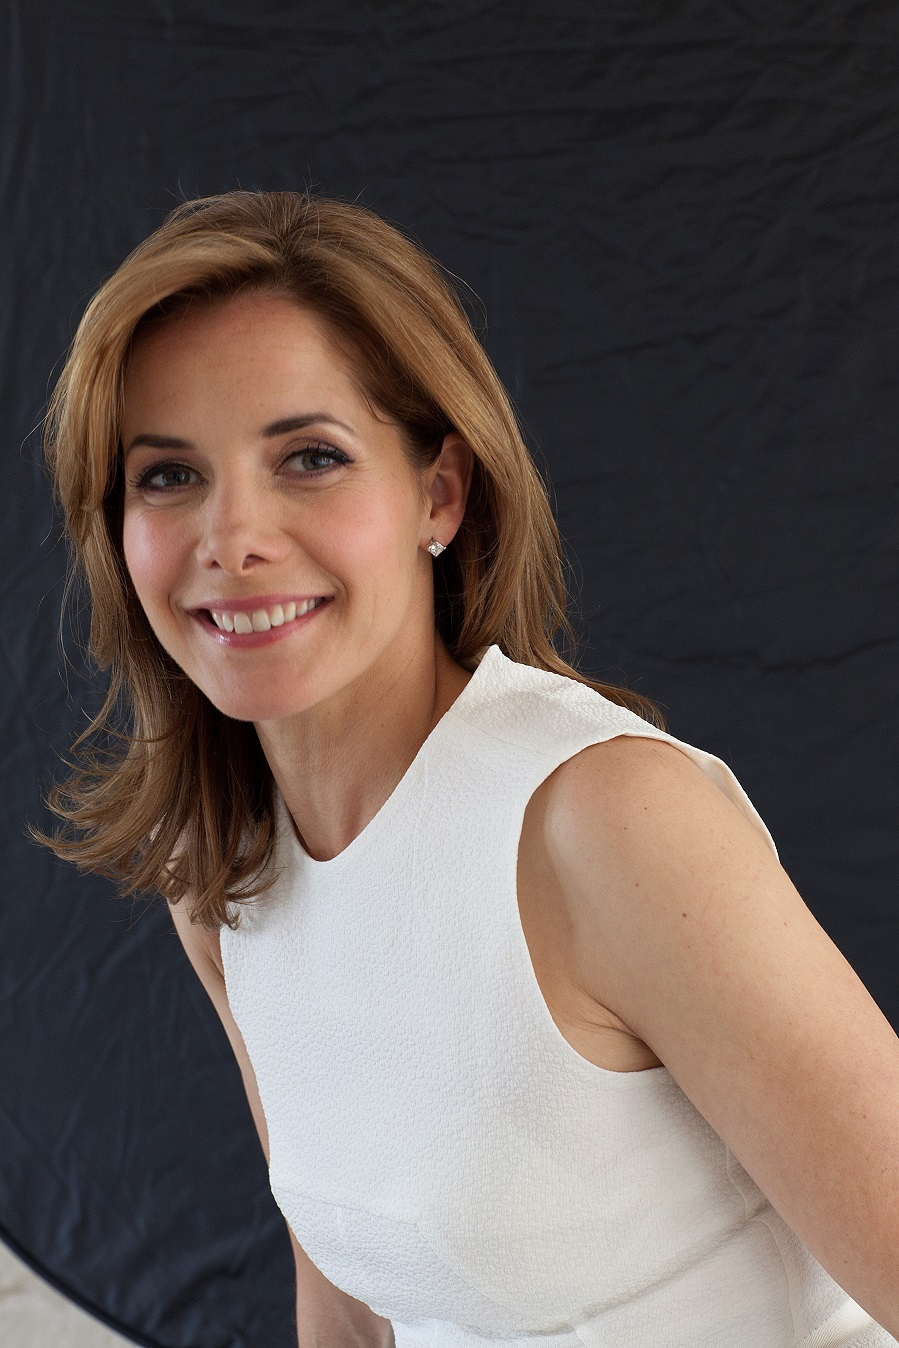 Darcey Bussell. Photo by Charlotte Macmillan